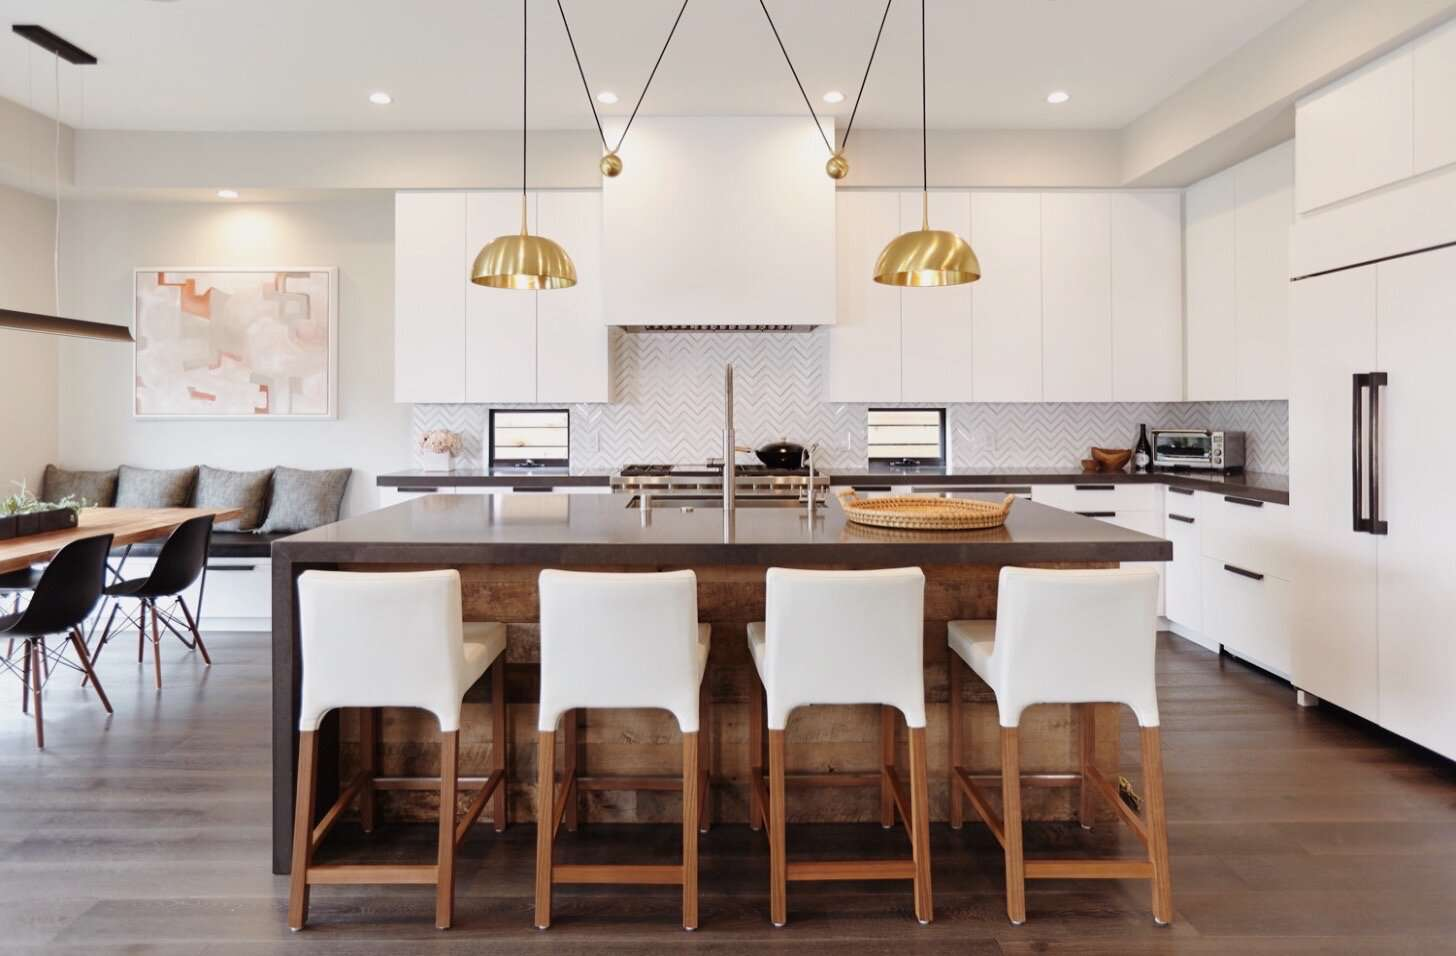 All white kitchen with brown kitchen island and gold domed lighting